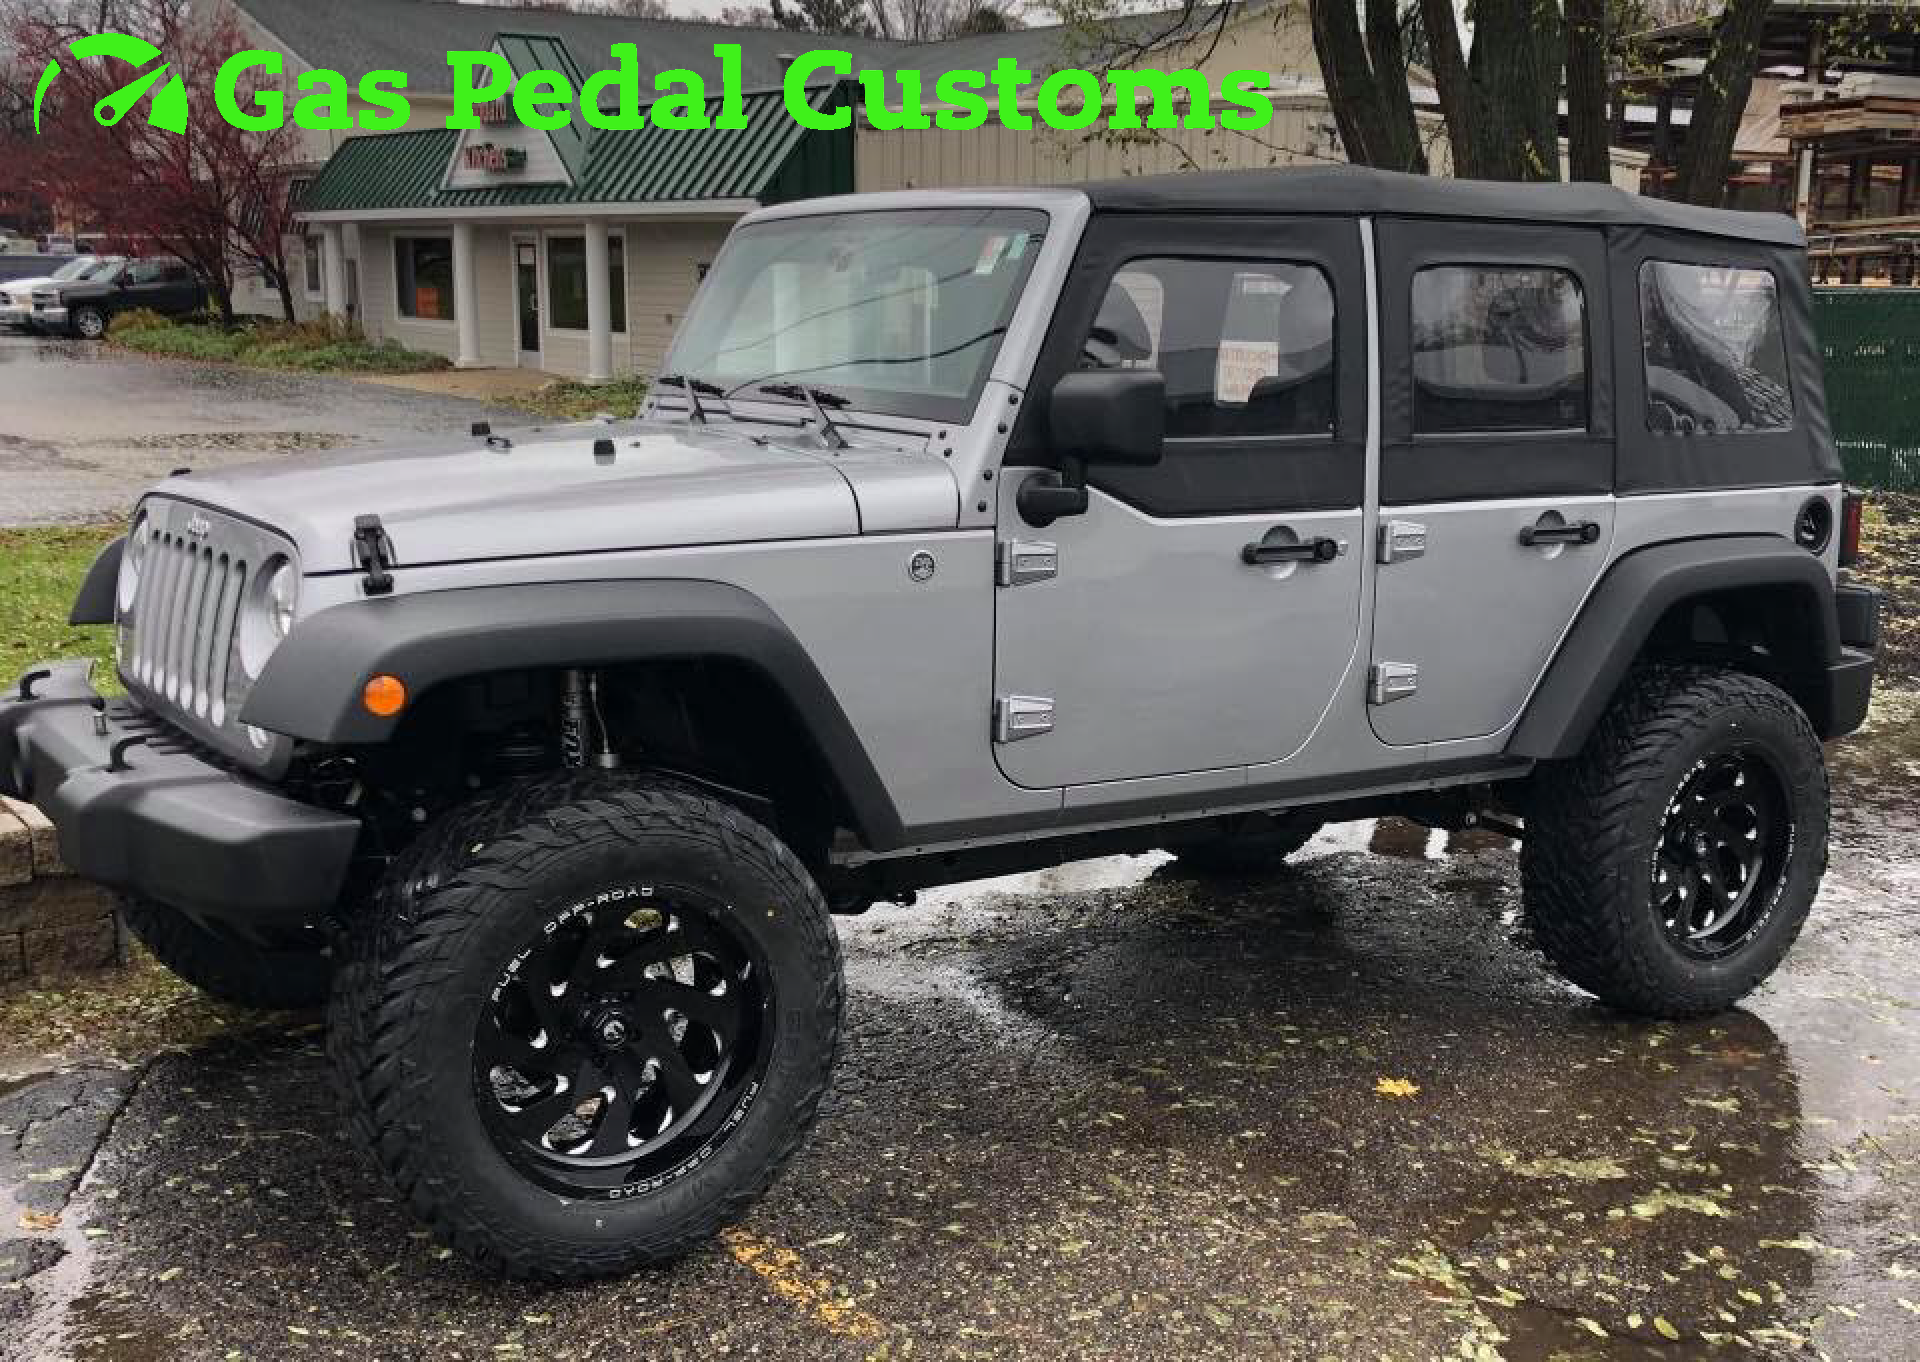 jeep wrangler with jks suspension fuel offroad wheels fox shocks and fuel tires gas pedal customs jeeps hemi jeep conversions customs jeeps jeep  [ 1920 x 1362 Pixel ]